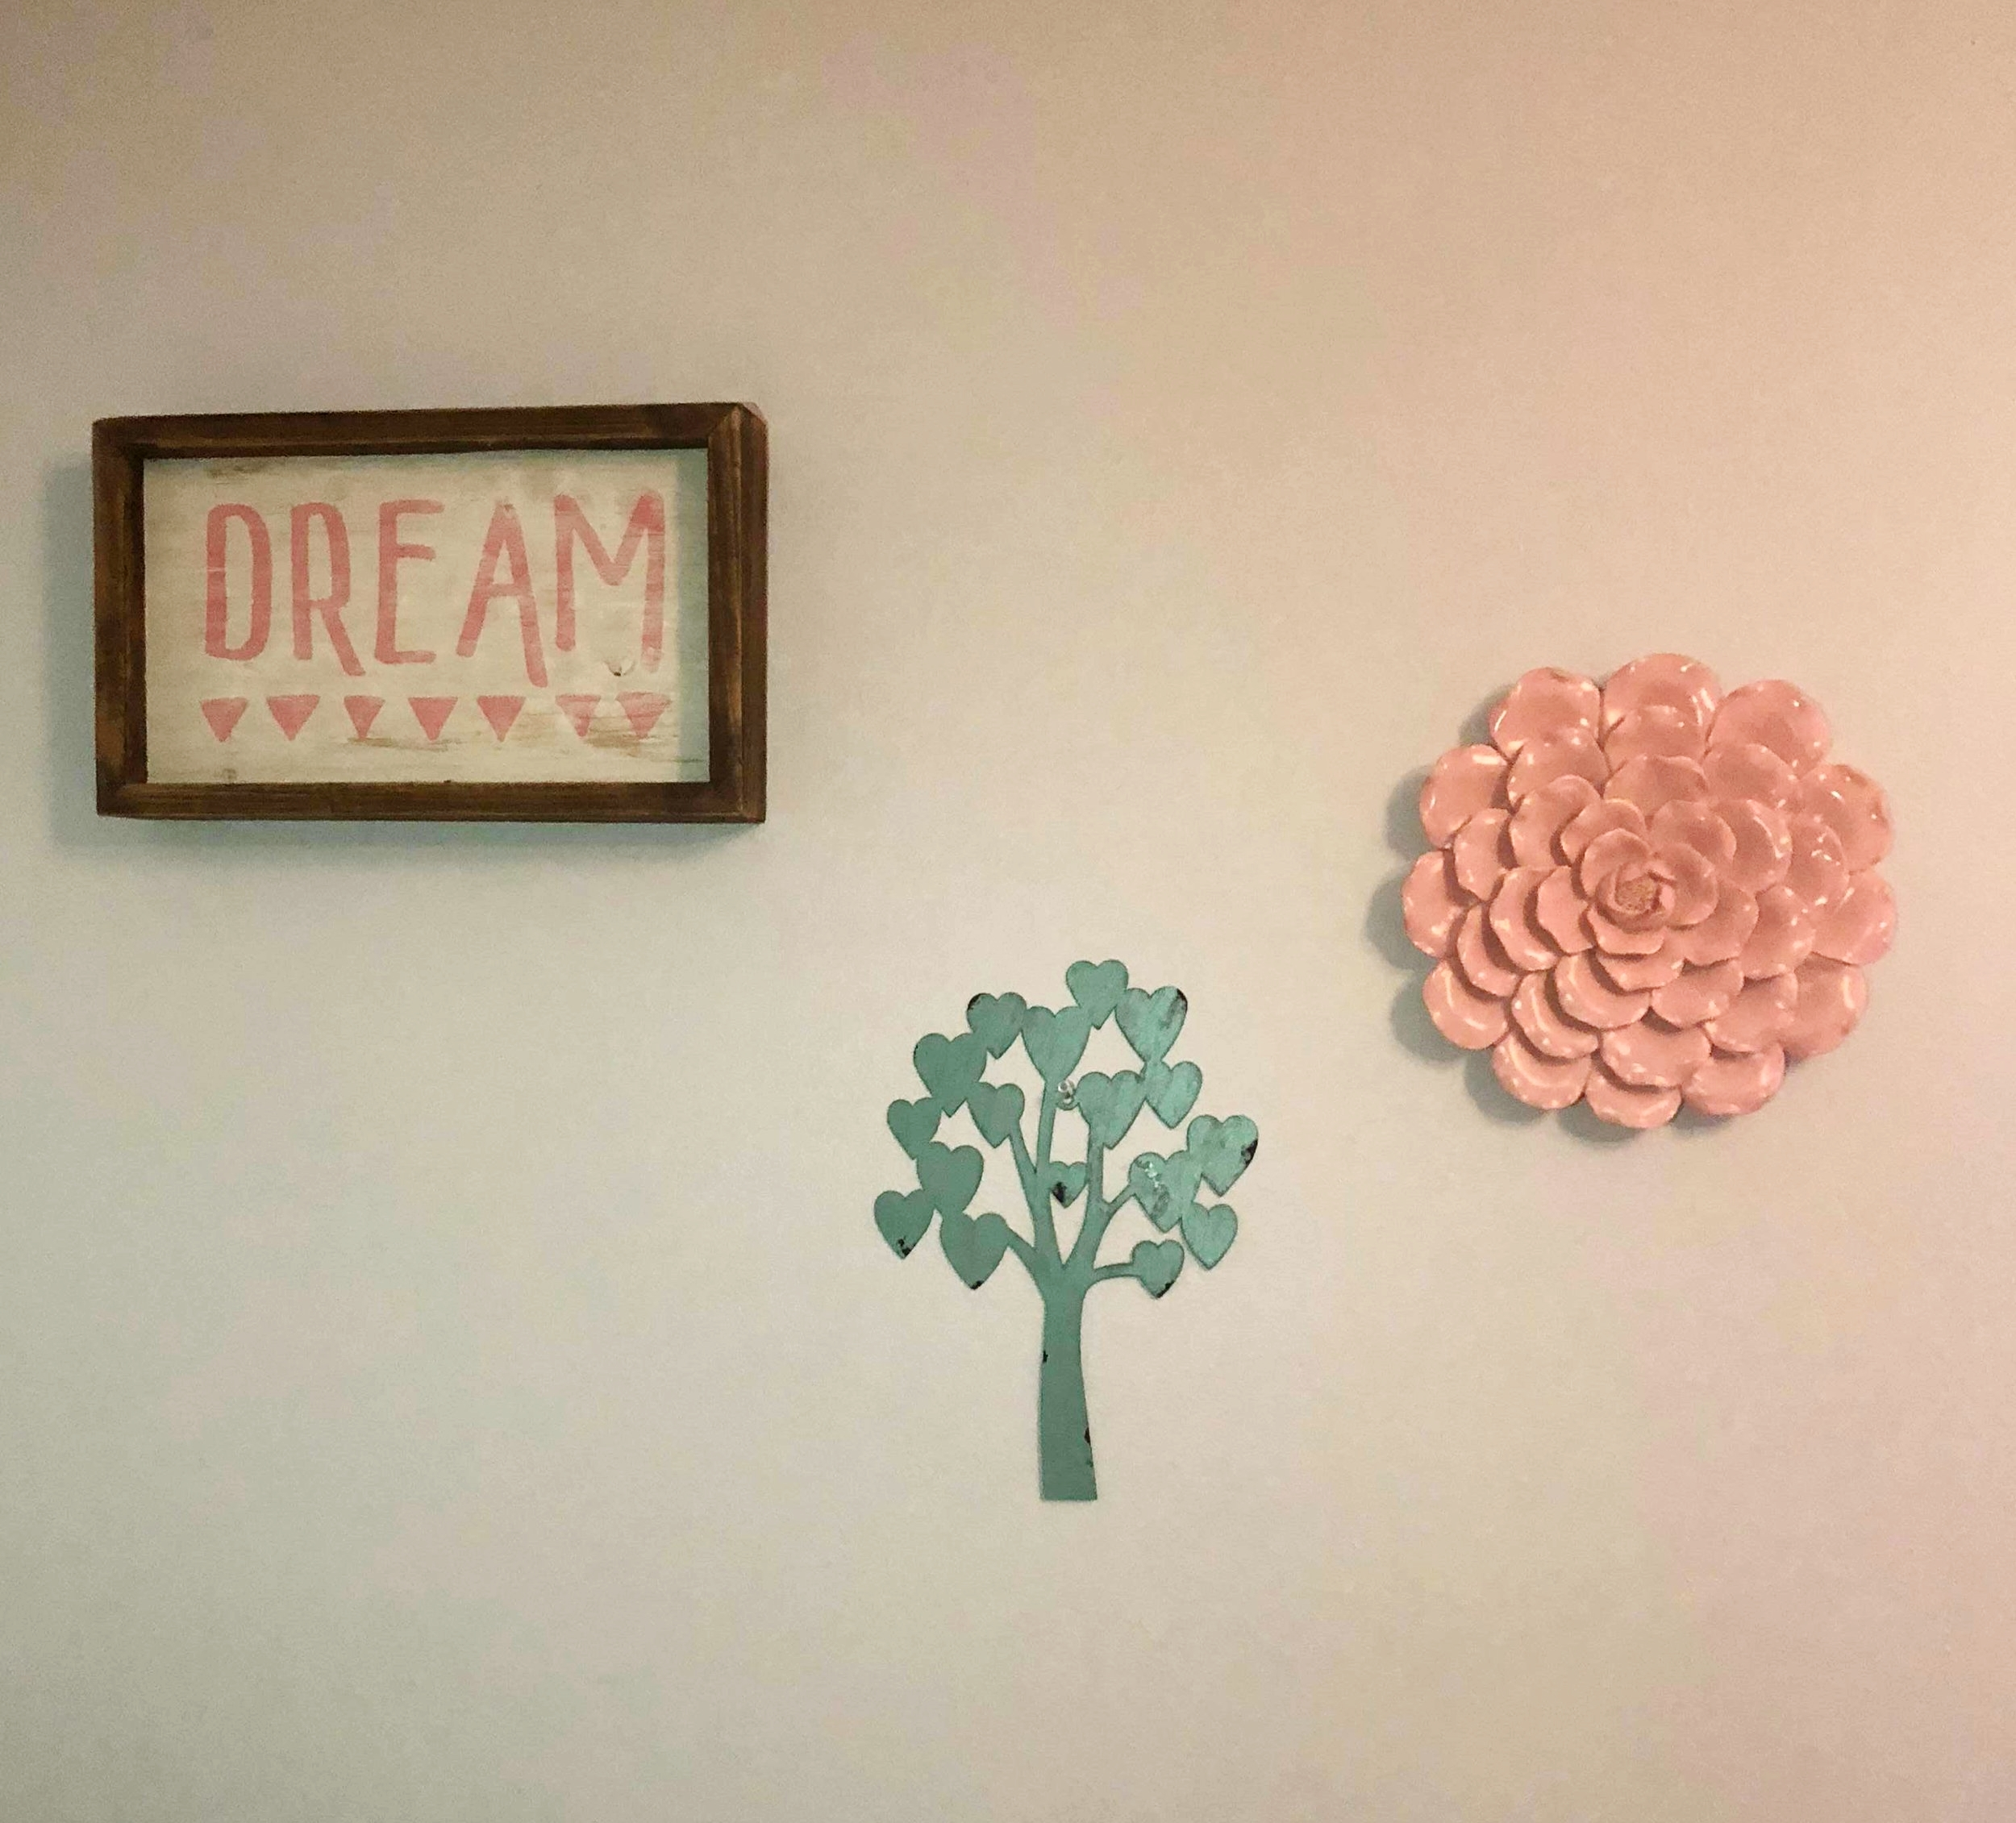 - 3. Dream Picture4. Pink Flower5. Metal Heart Tree